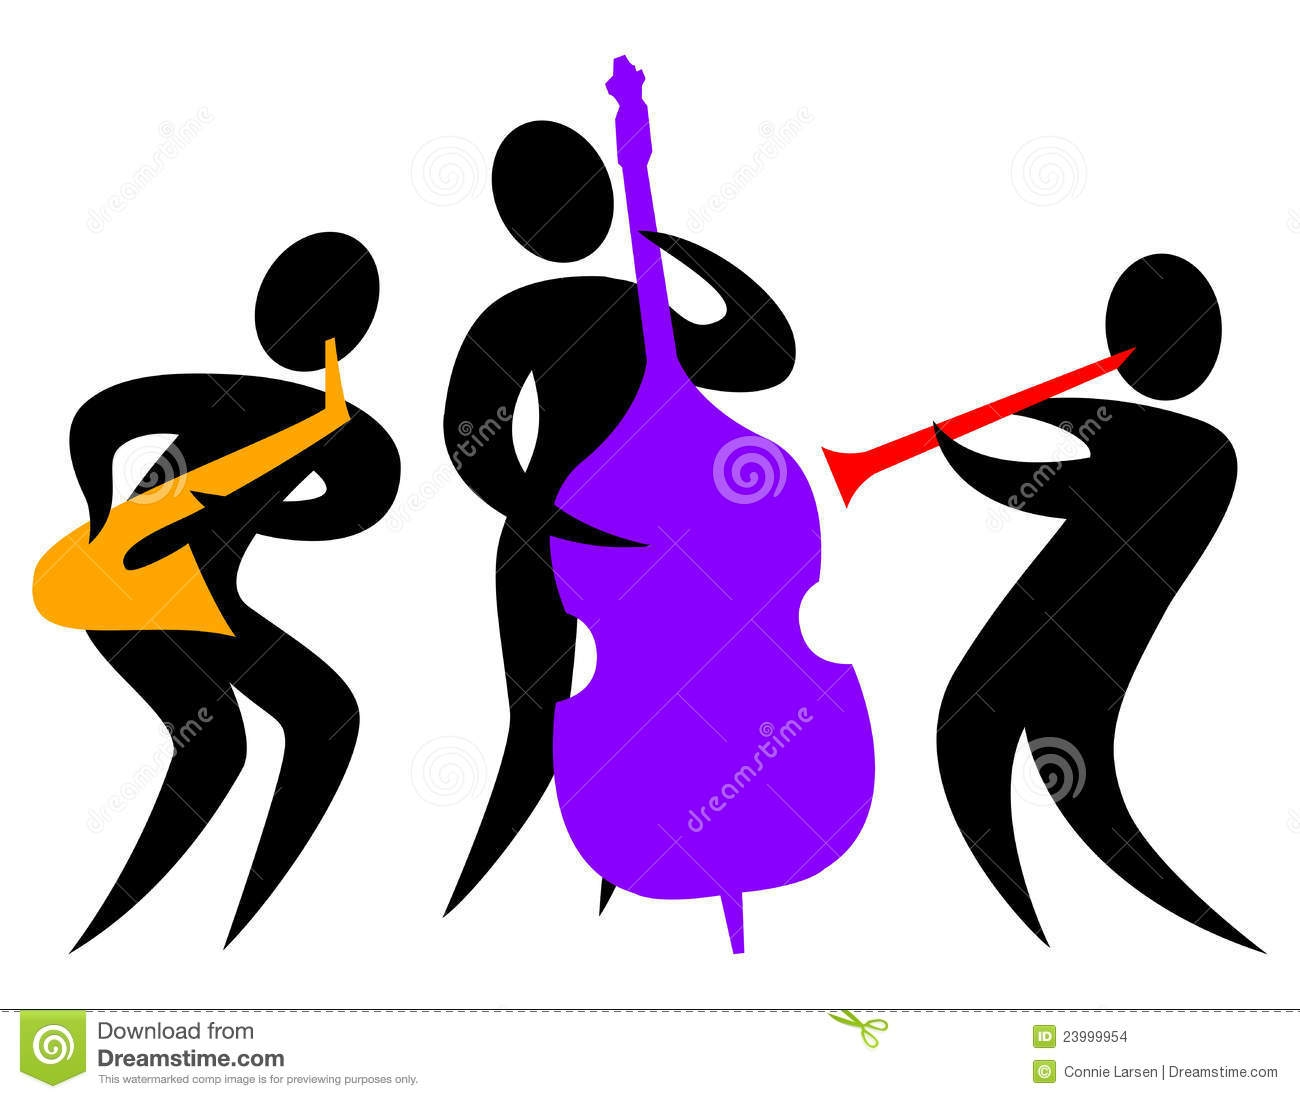 jazz silhouette clip art at getdrawings com free for personal use rh getdrawings com clipart jazz band clipart jazz band